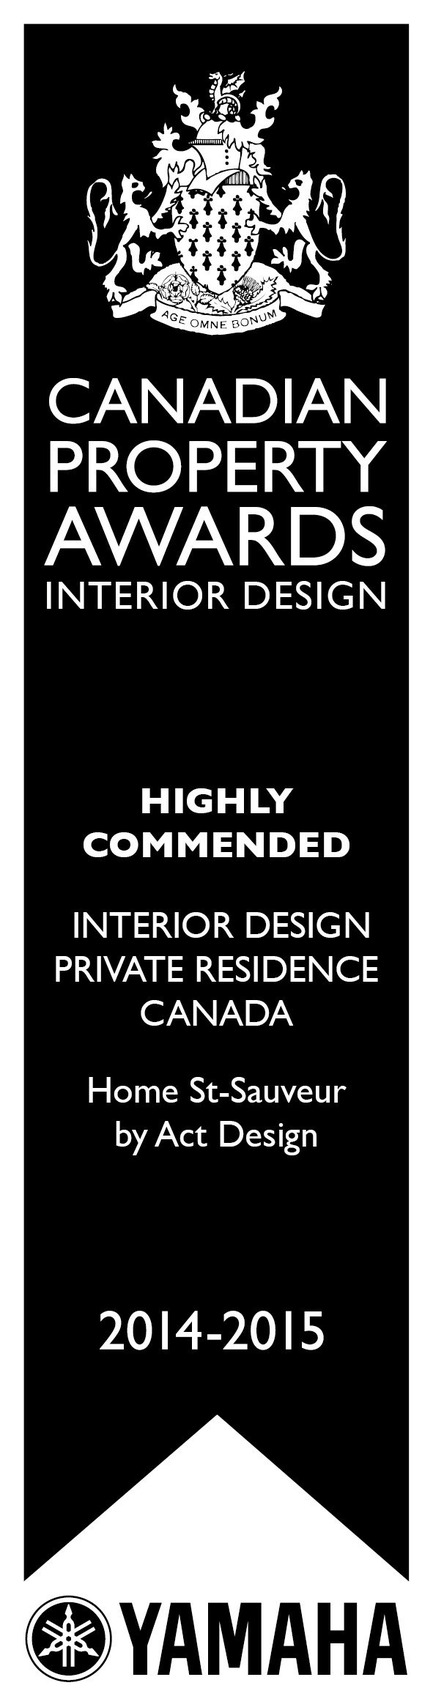 Press kit | 1179-02 - Press release | ActDesign is honoured by the prestigious International Property Awards for the interior design of the Saint-Sauveur residence. - ActDesign - Residential Interior Design - Photo credit: -